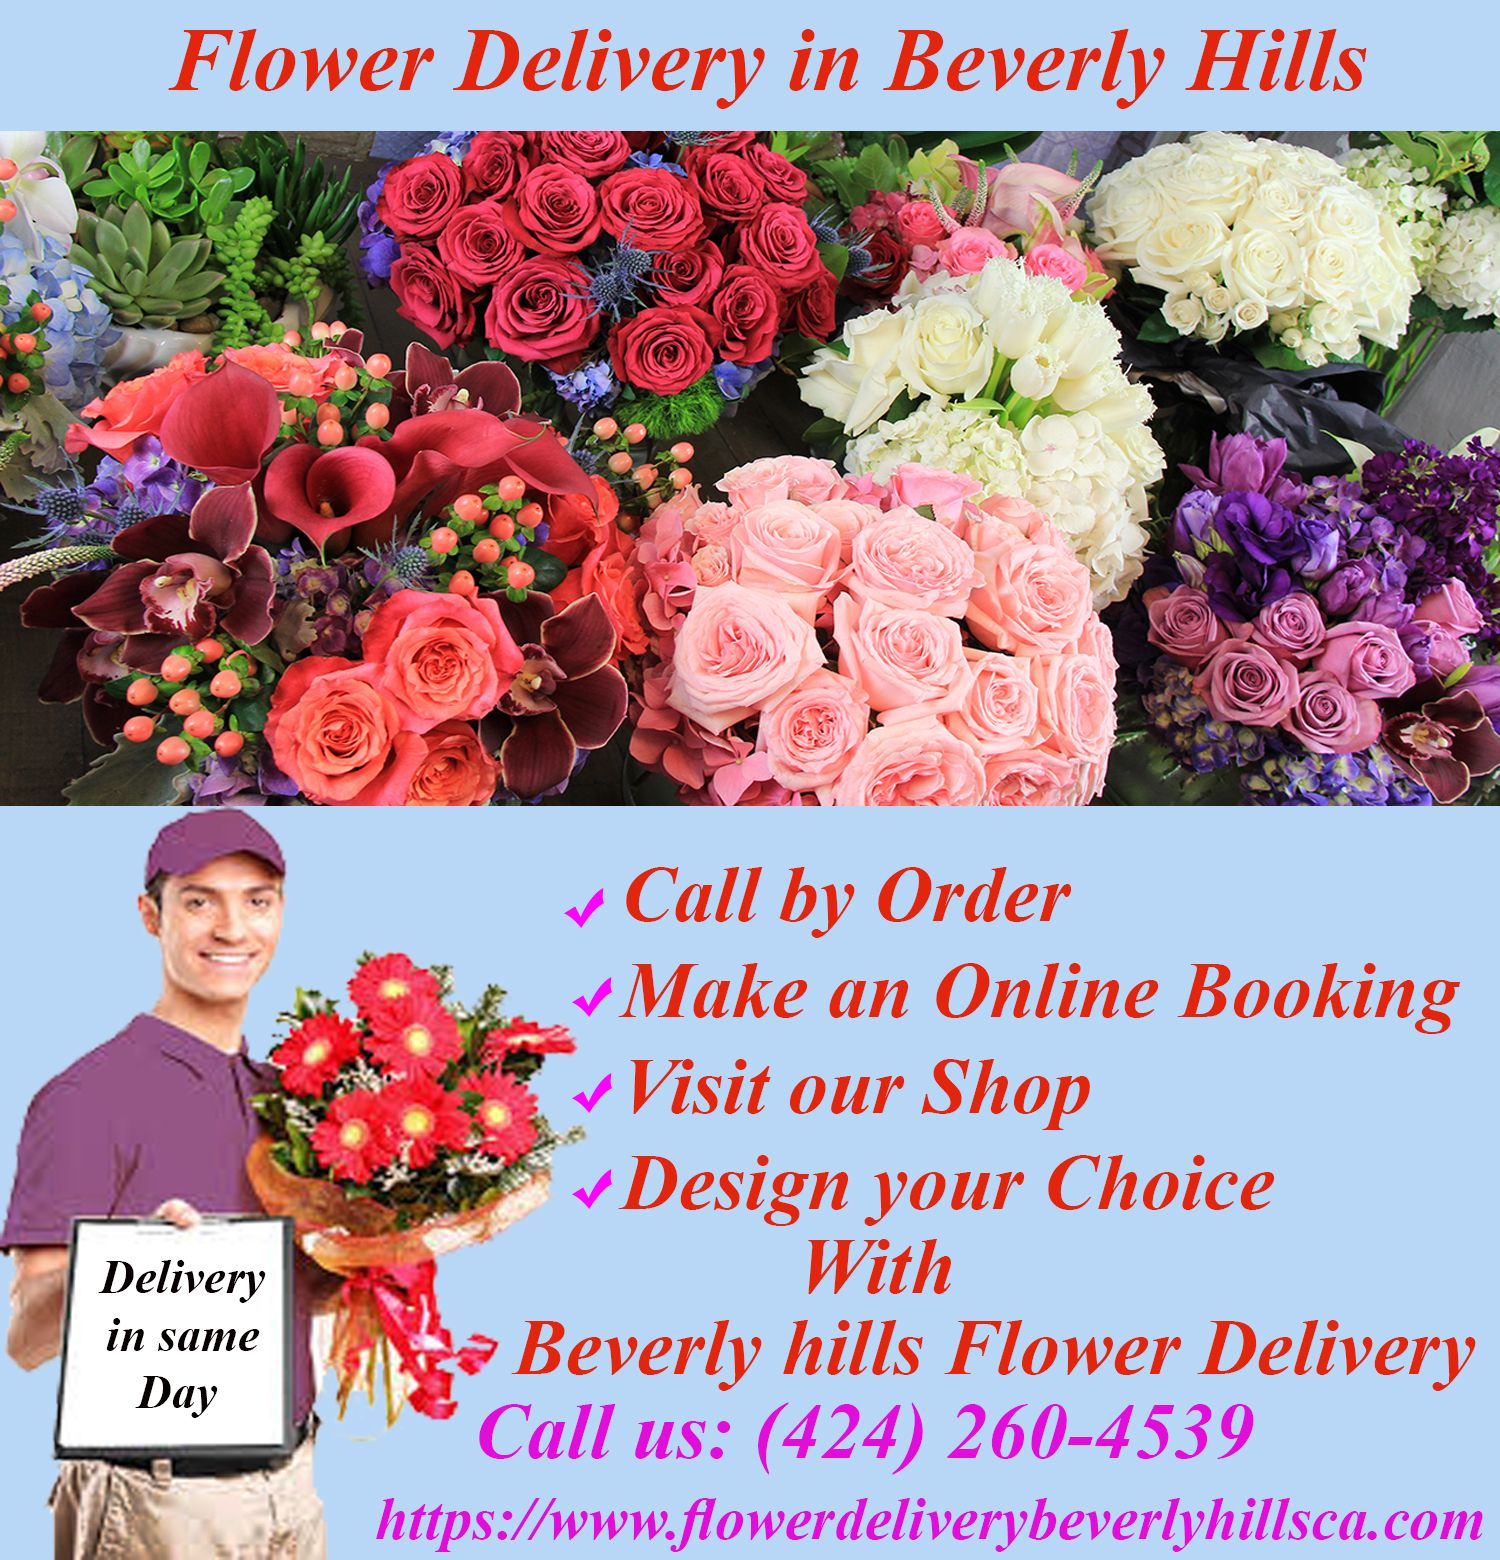 Flower Delivery Beverly Hills Ca Area Gives Best Prices